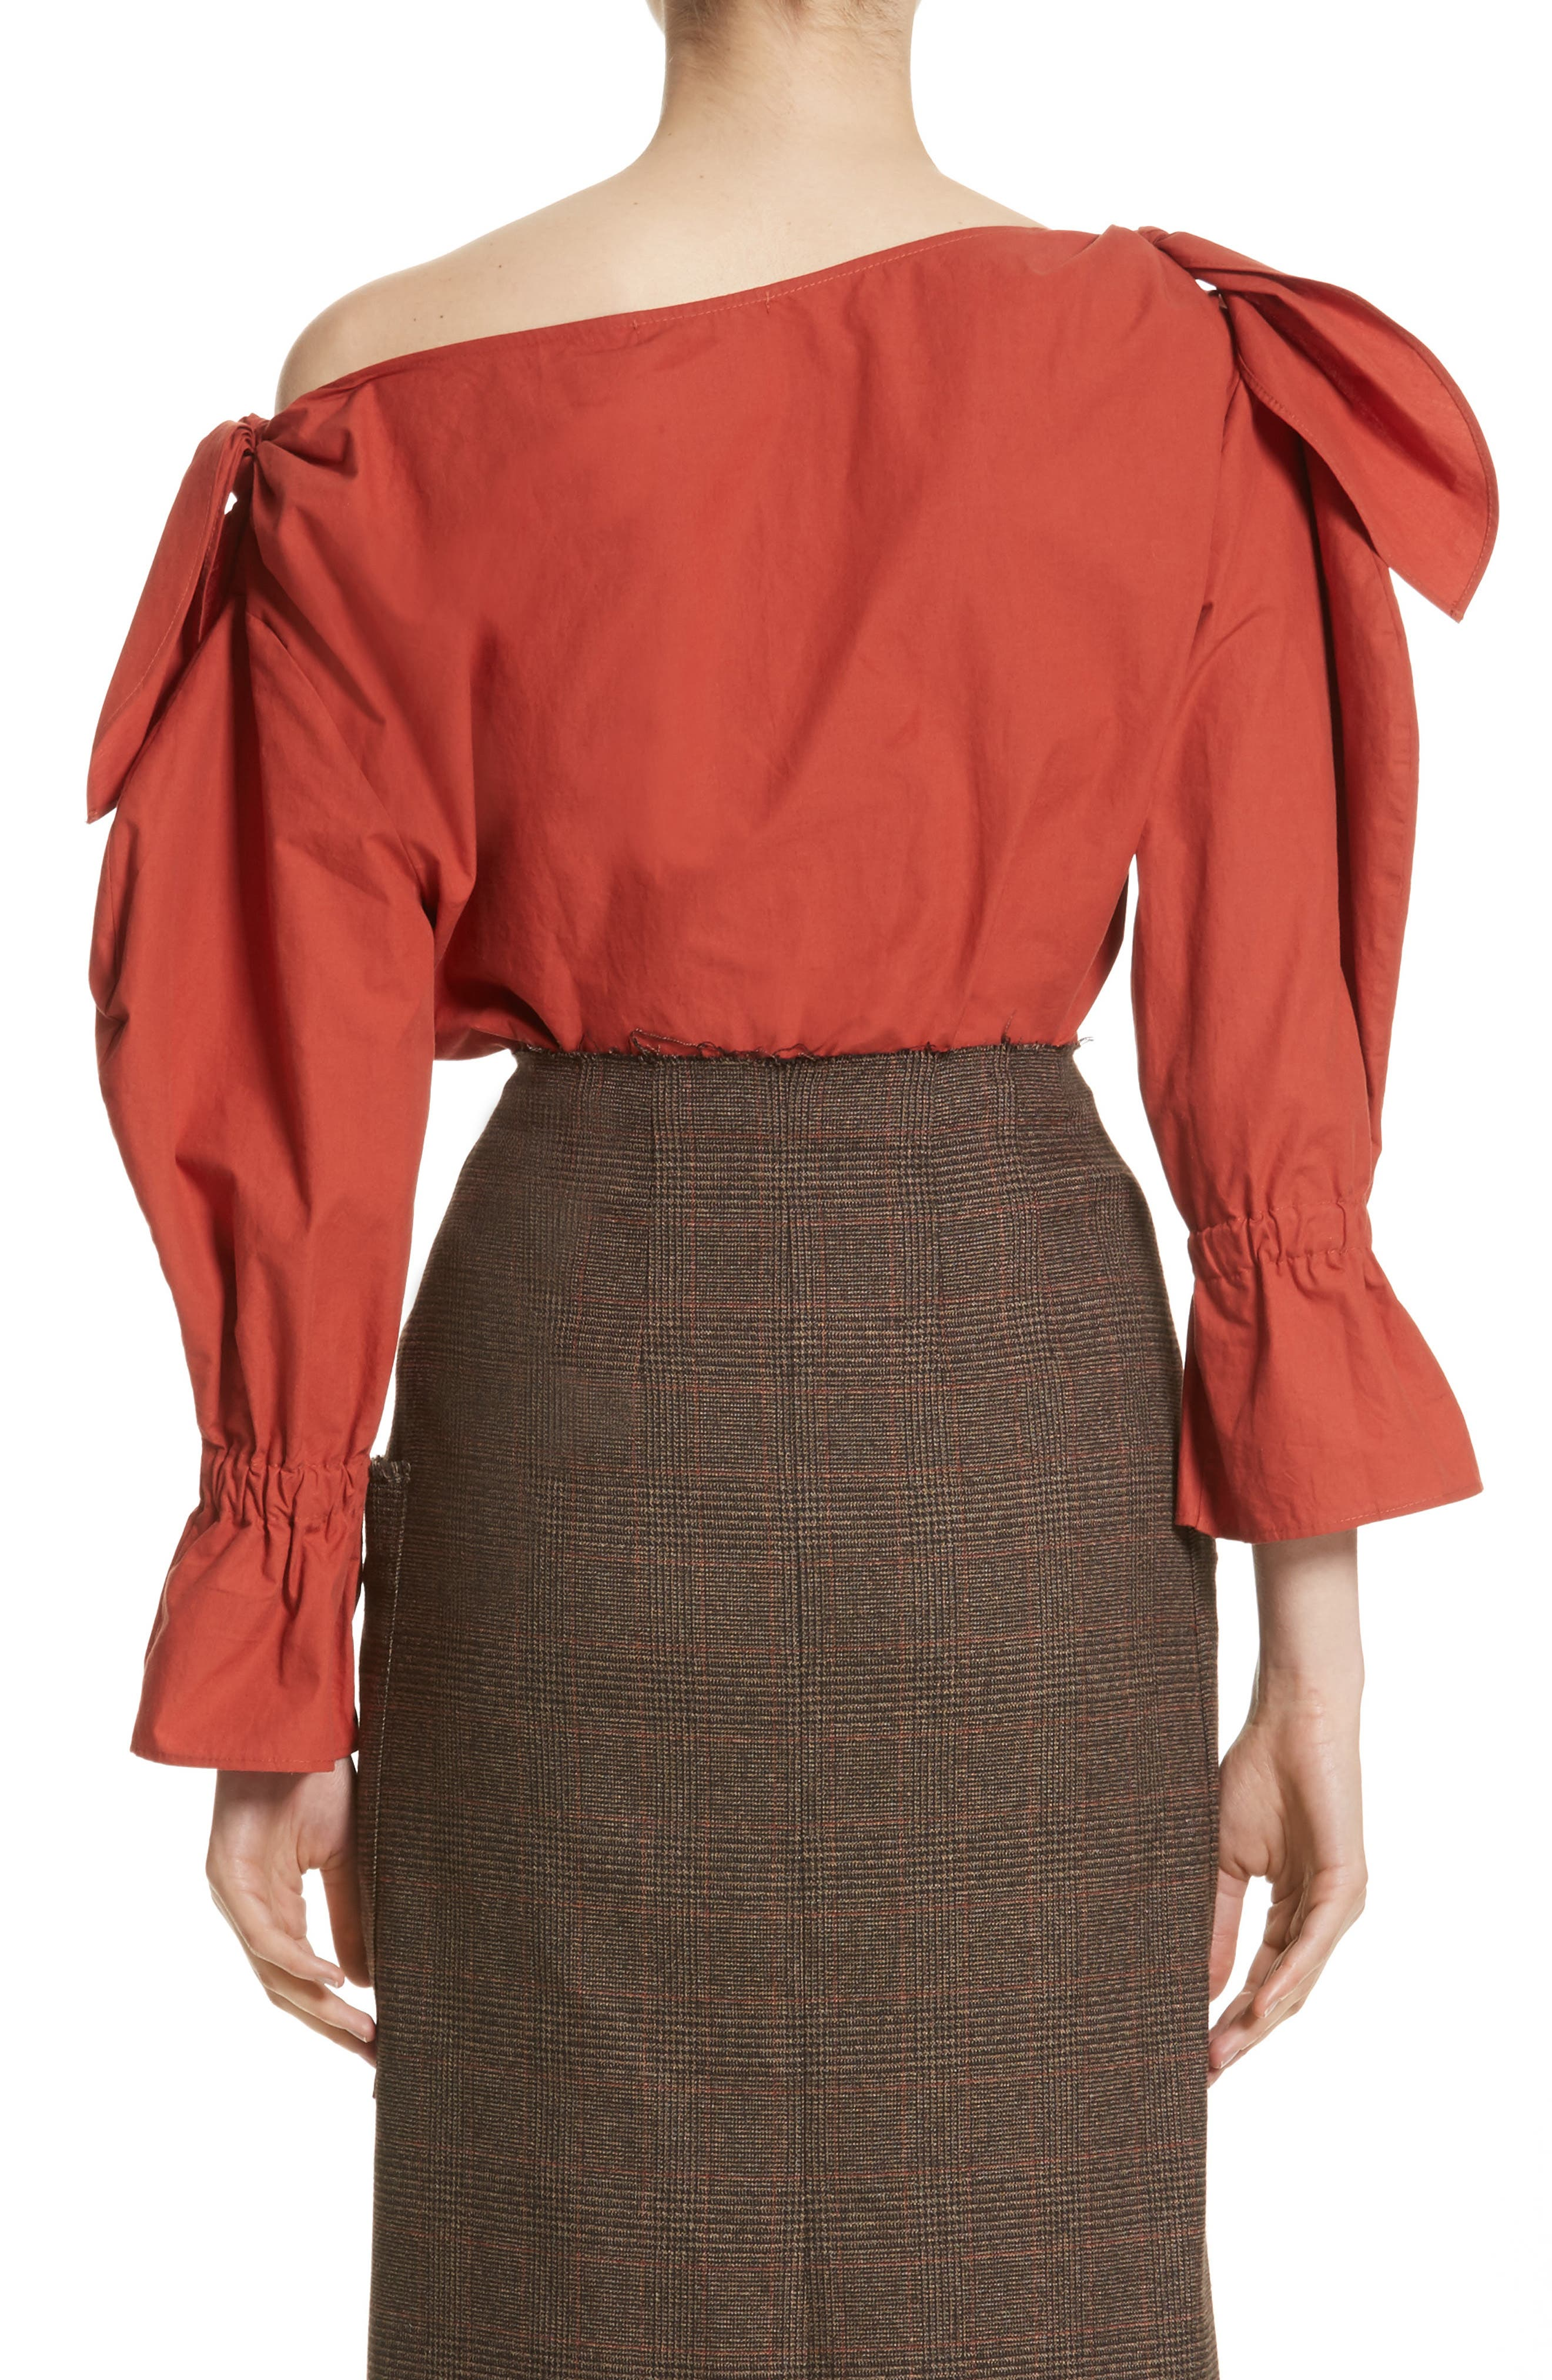 Michelle One-Shoulder Puff Sleeve Blouse,                             Alternate thumbnail 2, color,                             Rust